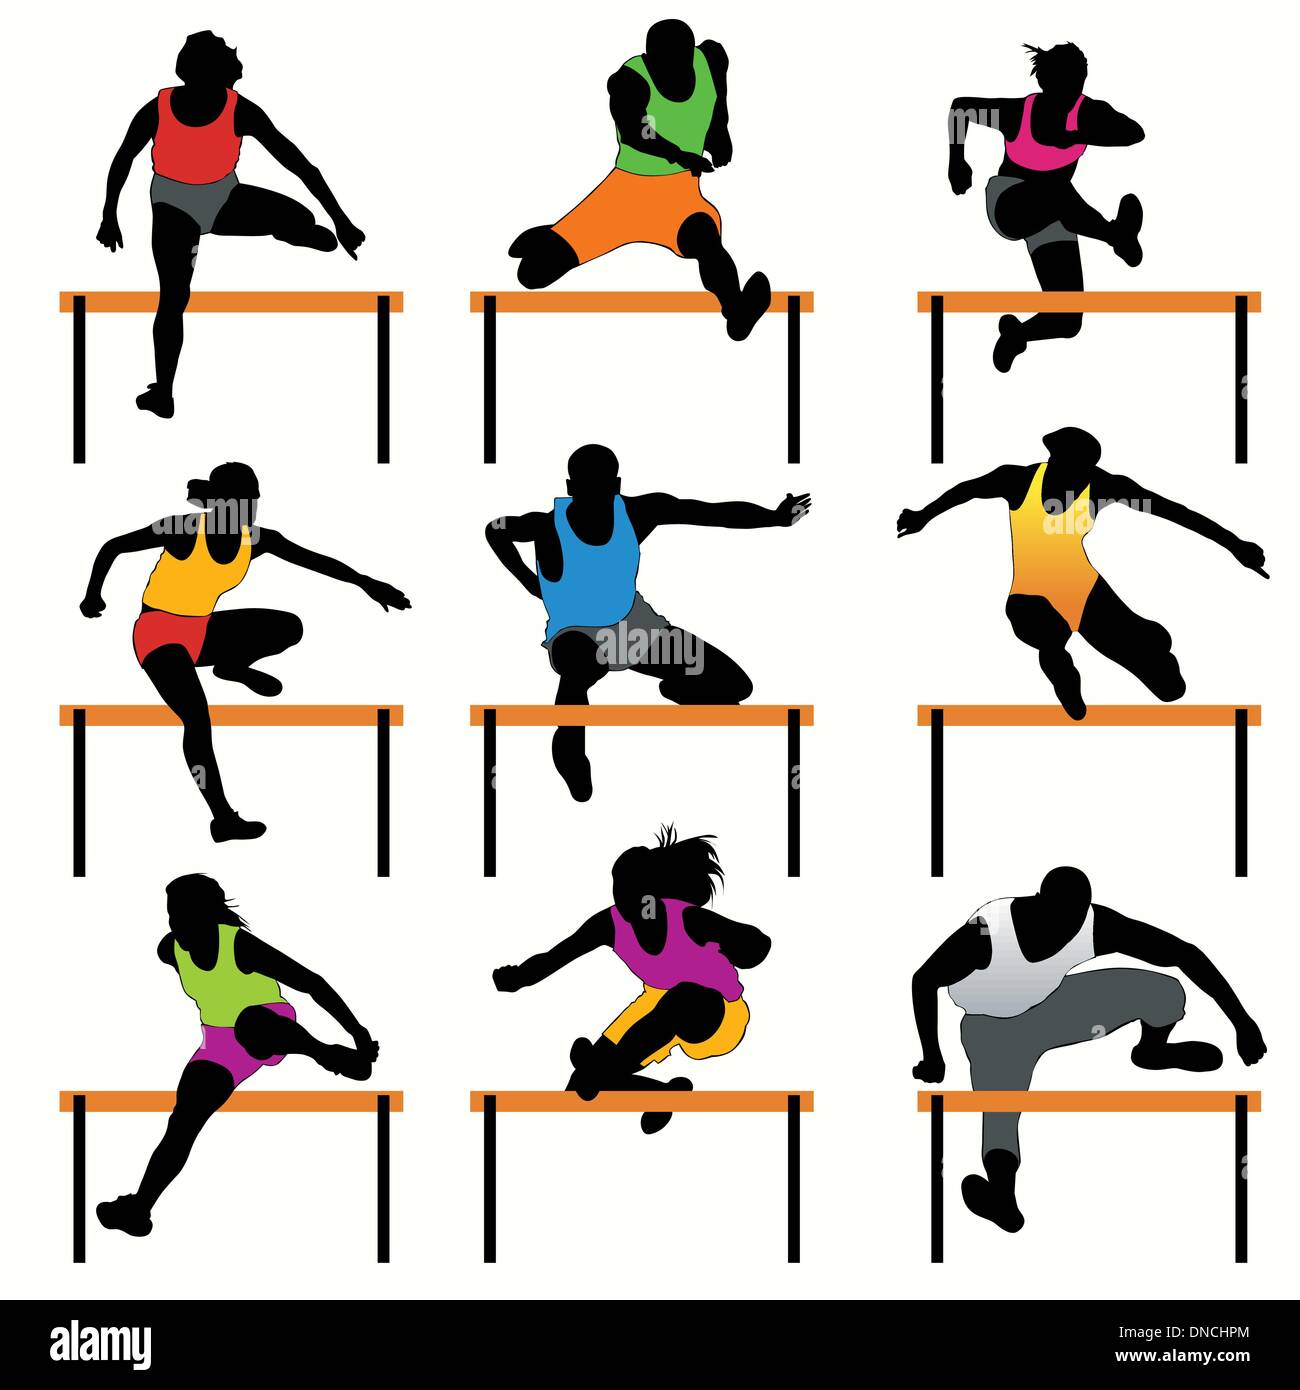 Hurdles silhouettes set - Stock Vector